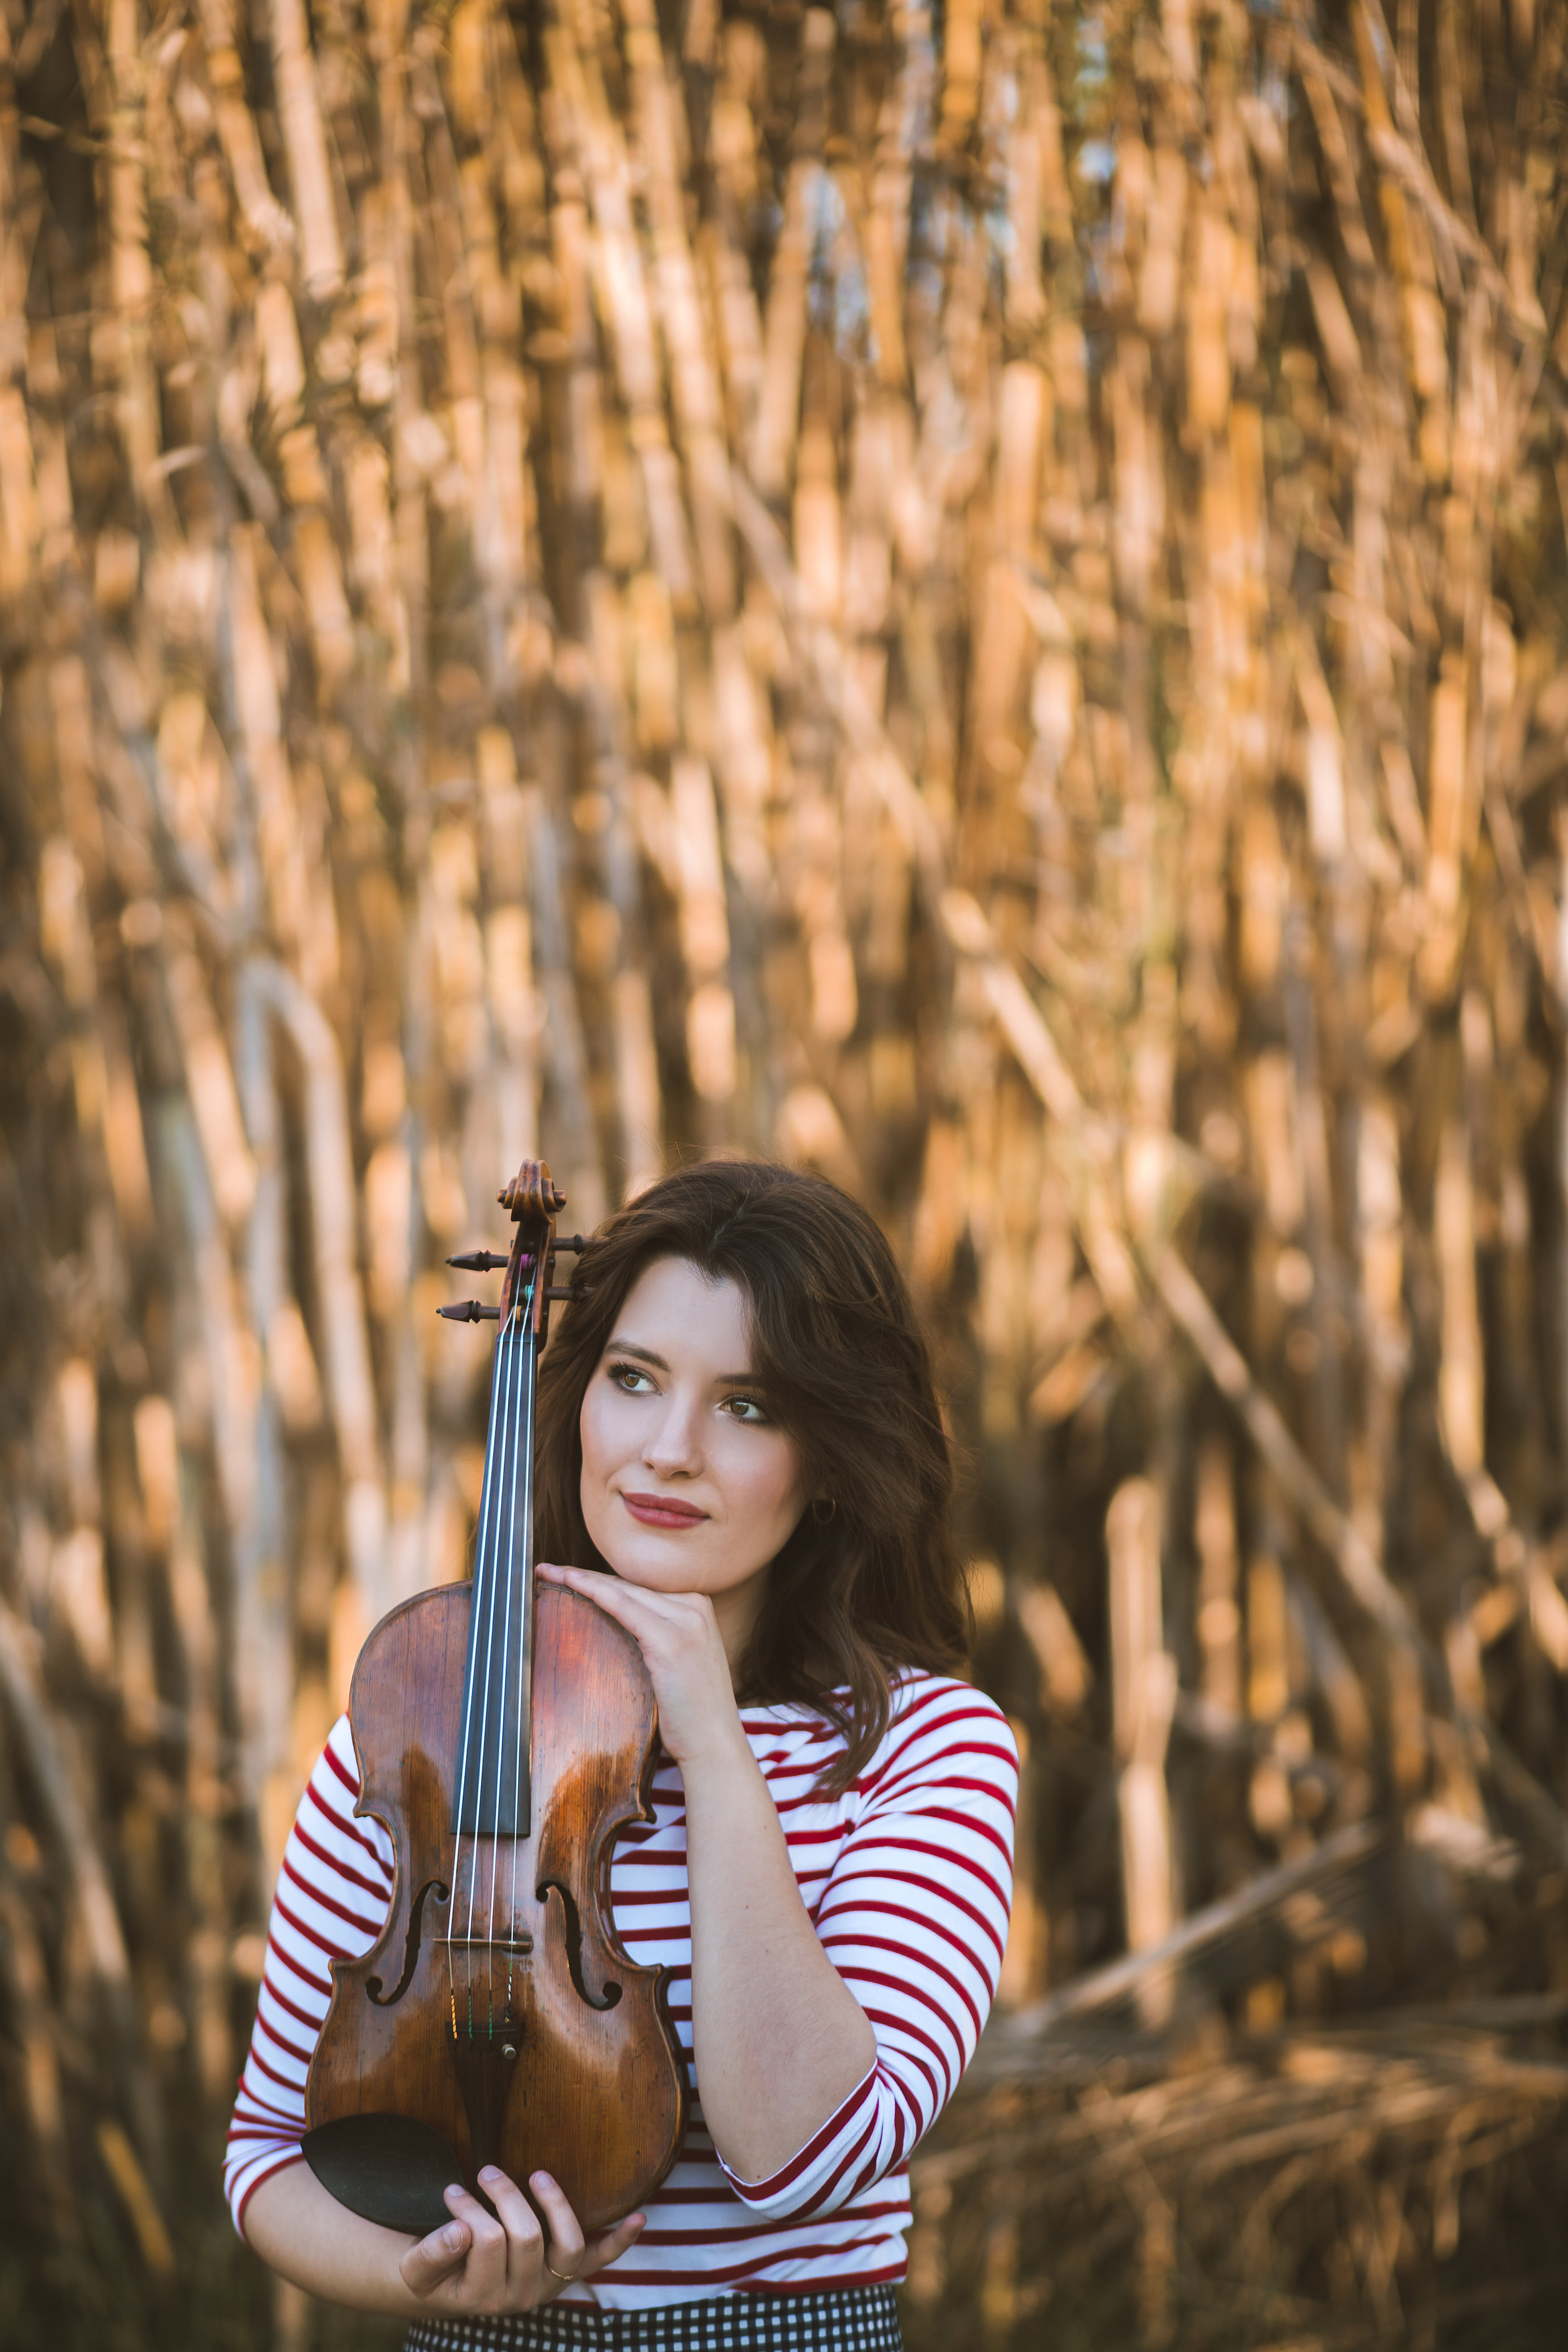 """English - Maria was born in Barcelona in 1993, and started his violin studies at the age of four with her father Cristian Florea, cellist and conductor of the Moldavian Chamber Orchestra. When she was seven years old, Maria performed her first concert as a soloist with the Montbèliard Orchestra (France).She studied with Gonçal Comellas (Spain) Stefan Gheorghiu (Romania) and Adelina Oprean (Switzerland) and has also attended master classes with Ivry Gitlis, Maxim Vengerov, Eduard Schmieder, Pamela Frank, Yair Kless, Günther Pichler among others.She attended the Reina Sofia Music School in Madrid, from 2010 to 2014 under the guidance of violin professors Zakhar Bron and Yuri Volguin. She was also a member of the """"Albeniz de Prosegur"""" chamber music group with professors Heime Müller and Marta Gulyas. She was awarded the """"Outstanding string quartet Award"""" 2012-2013, given by Her Majesty the Queen of Spain.The """"Albeniz de Prosegur"""" group, performed at many concert halls of Spain, including """"Auditiorio Sony"""", the very prestigious Auditorio Nacional de Madrid, and they where live recorded several times by the Spanish National Radio.She has performed as soloist in """"Palau de la Musica Catalana"""" (Barcelona), Ateneu and Radio Hall of Bucharest (Romania), Organ Hall (Republic of Moldova), Sala Thalia of Sibiu (Romania) among others and given recitals in many countries such as France, Germany, Switzerland, Austria, Romania, Republic of Moldova, Bulgaria, United Kingdom Poland, Ecuador and Spain.Since 2012, Maria stablished a regular collaboration with the Spanish pianist Juan Barahona. They have performed as a duo in Ecuador, Germany, Austria, England, Spain, Romania and Republic of Moldavia and they have lately developed a great interest in introducing Spanish music all over the world with works such as Joaquín Turina """"Poema de una Sanluqueña"""" and Manuel de Falla """"Canciones populares Españolas"""".Maria has received several prizes and awards in different competitions as """"Jeunesses"""